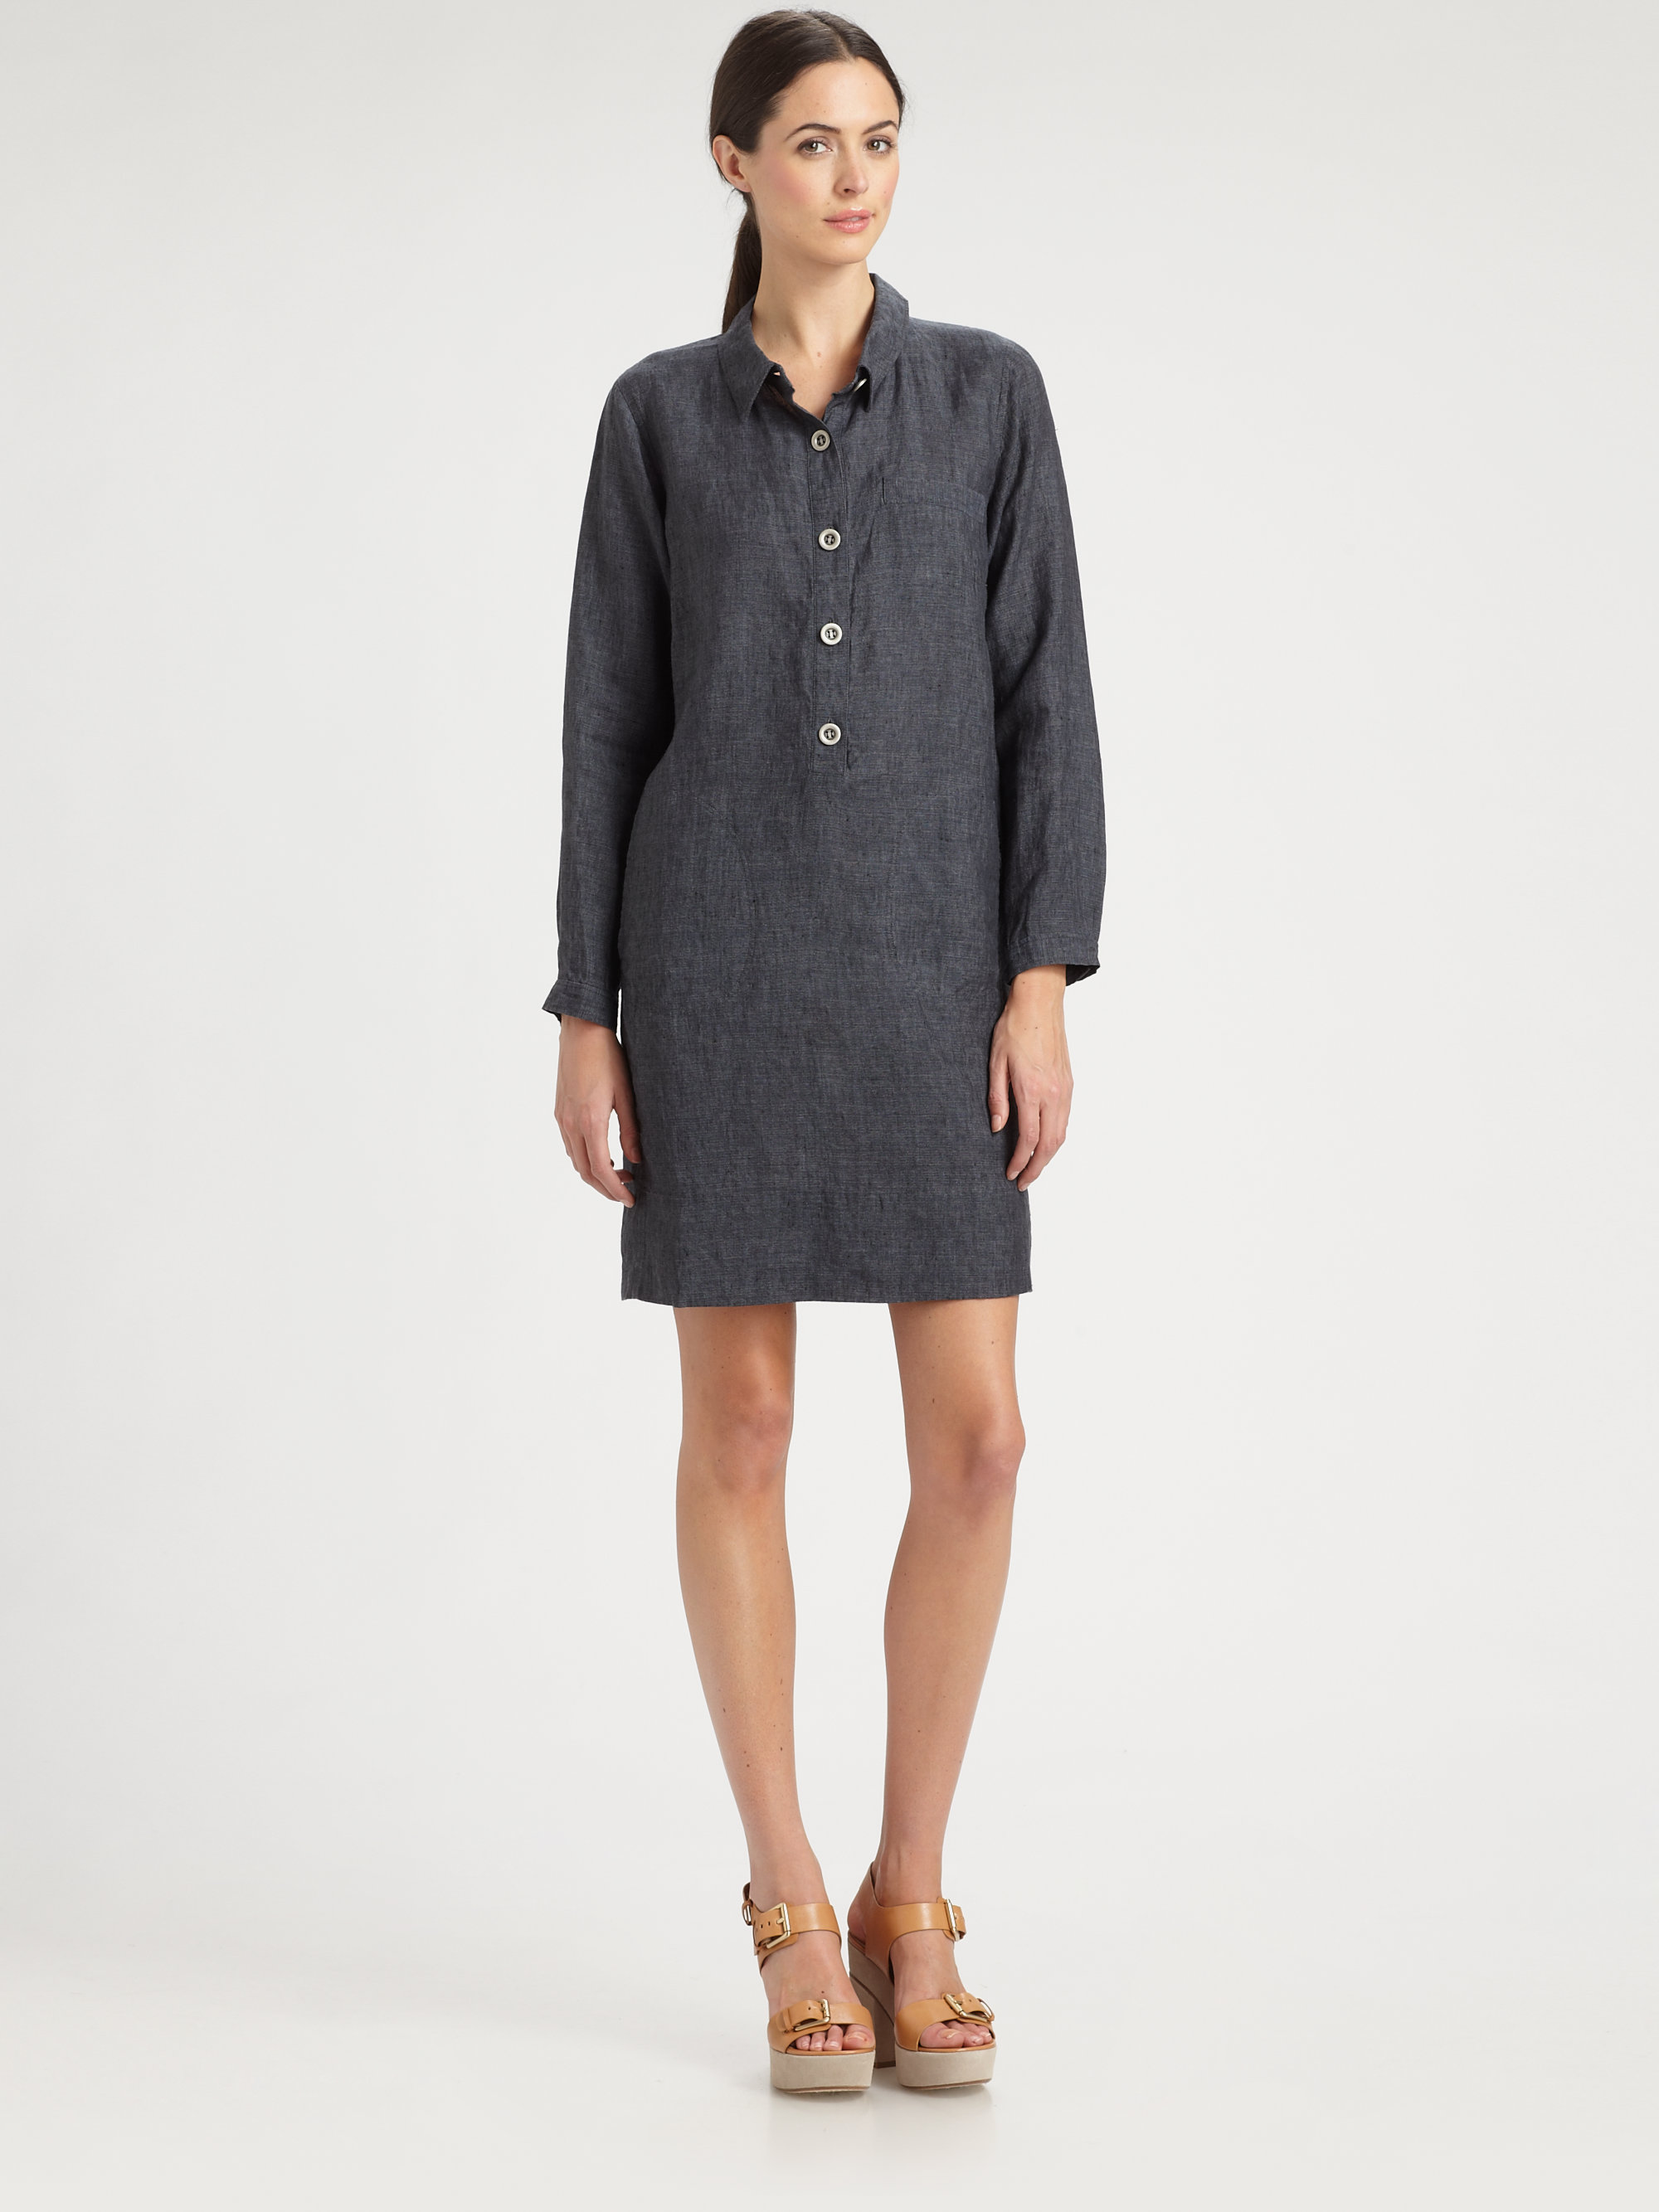 bbb1708b7eb Eileen Fisher Washed Linen Shirtdress in Gray - Lyst